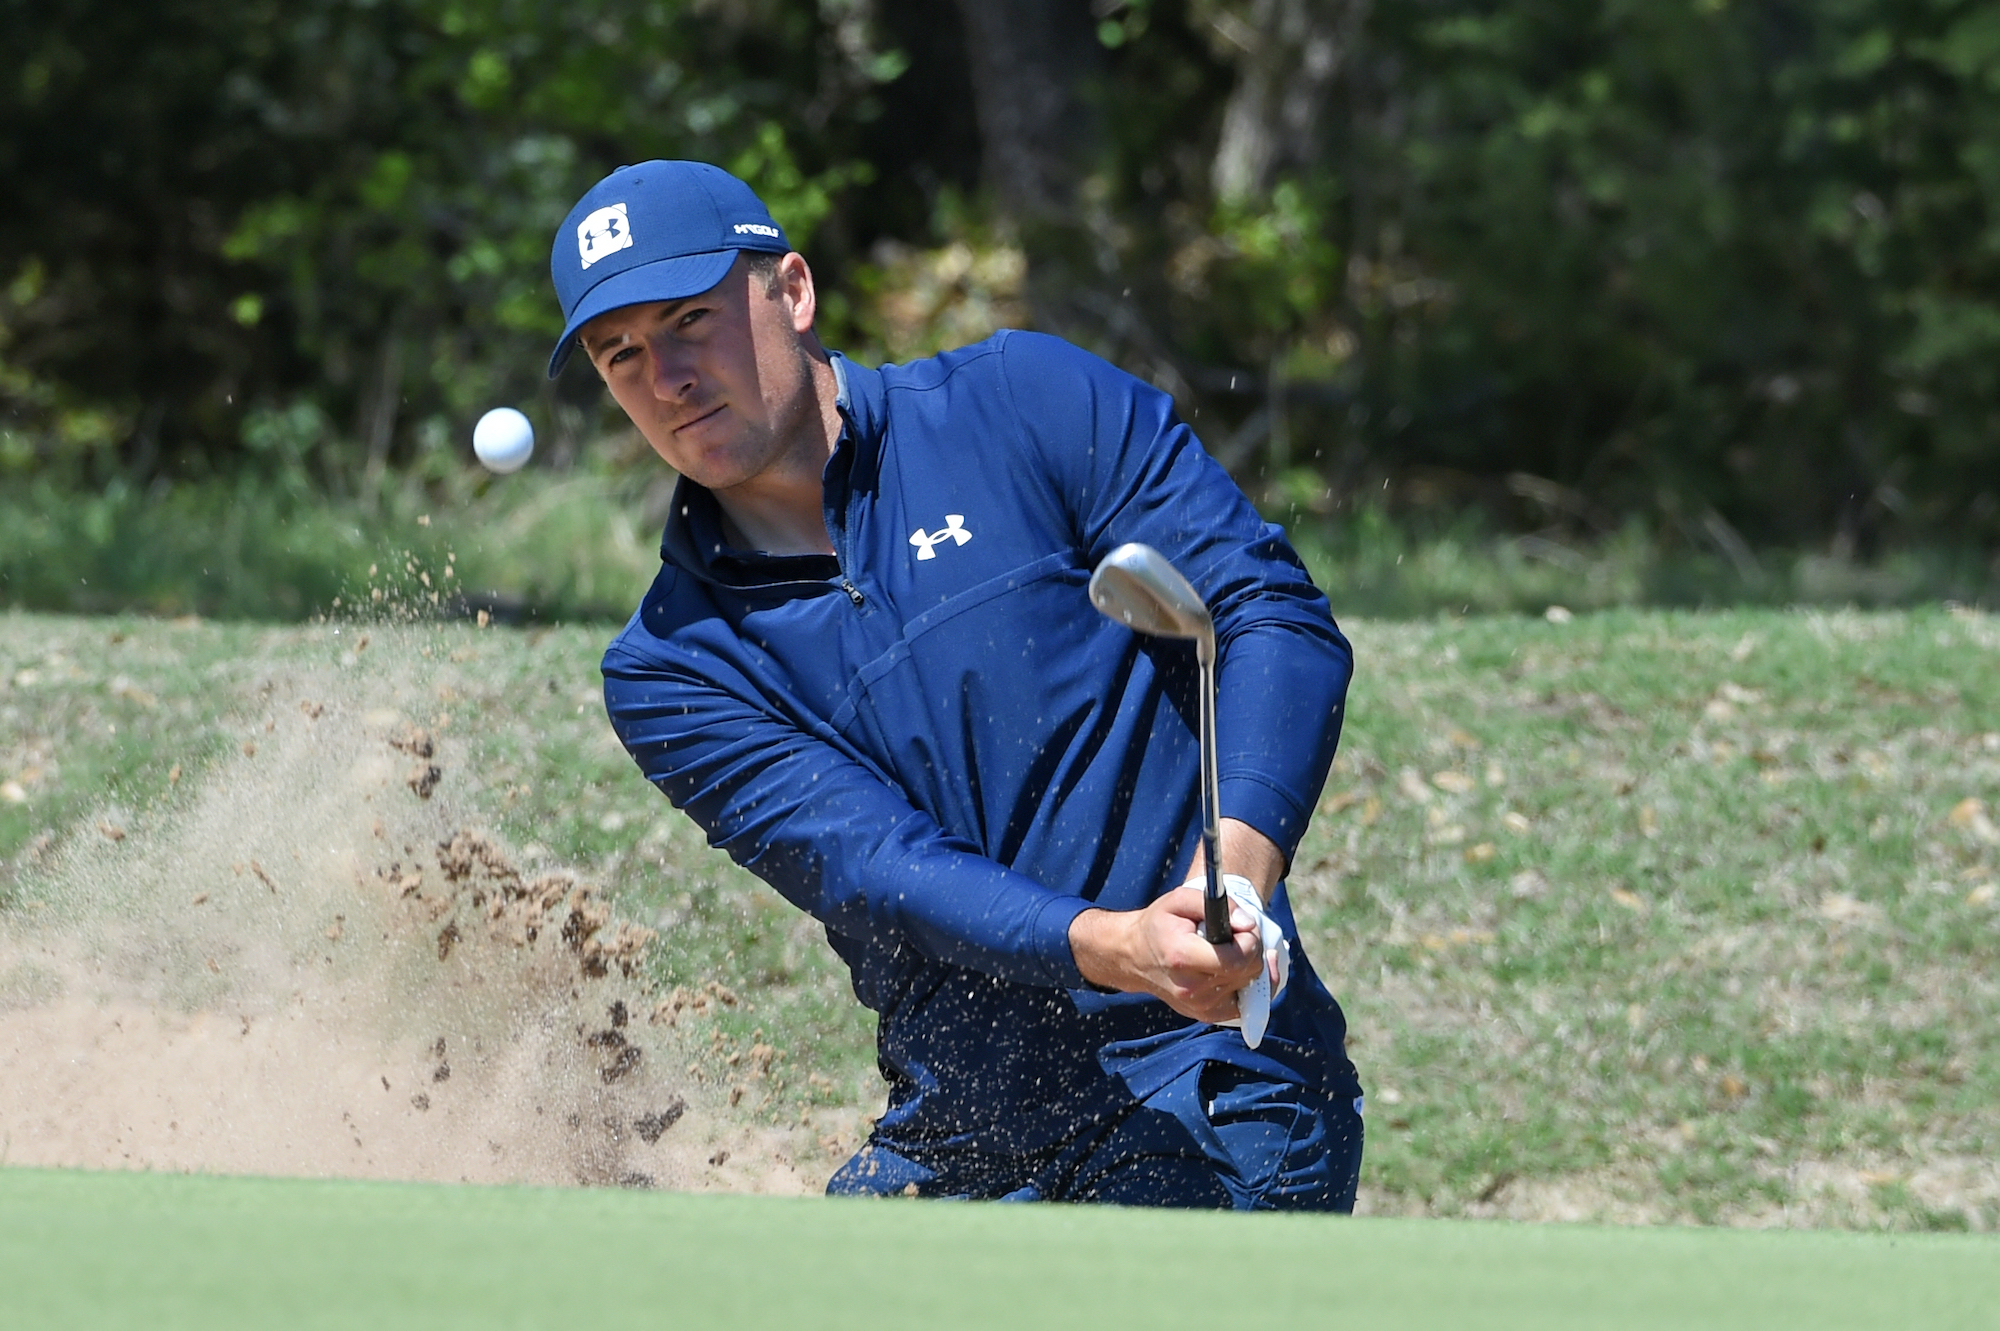 2021 Valero Texas Open: Round 1 - From the Bunker on No. 6